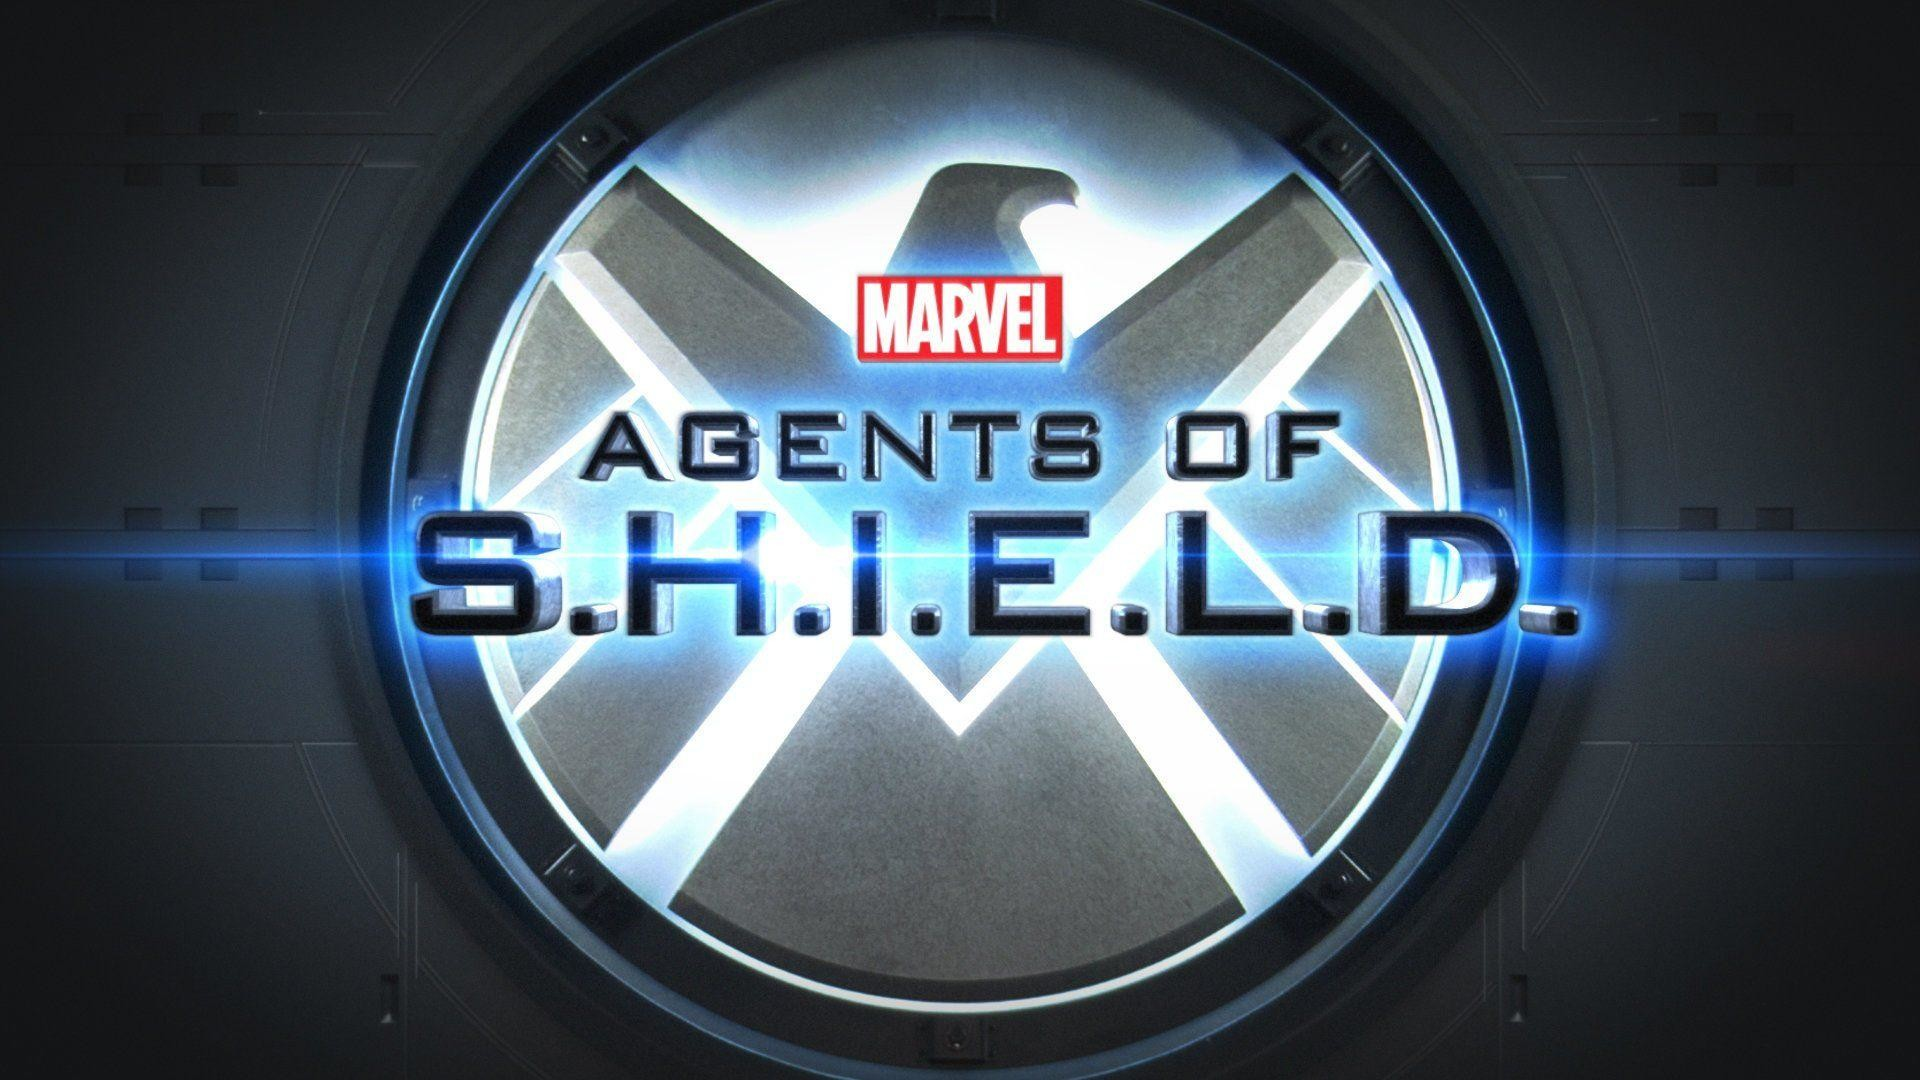 63 Marvel's Agents Of S.H.I.E.L.D. HD Wallpapers | Backgrounds .